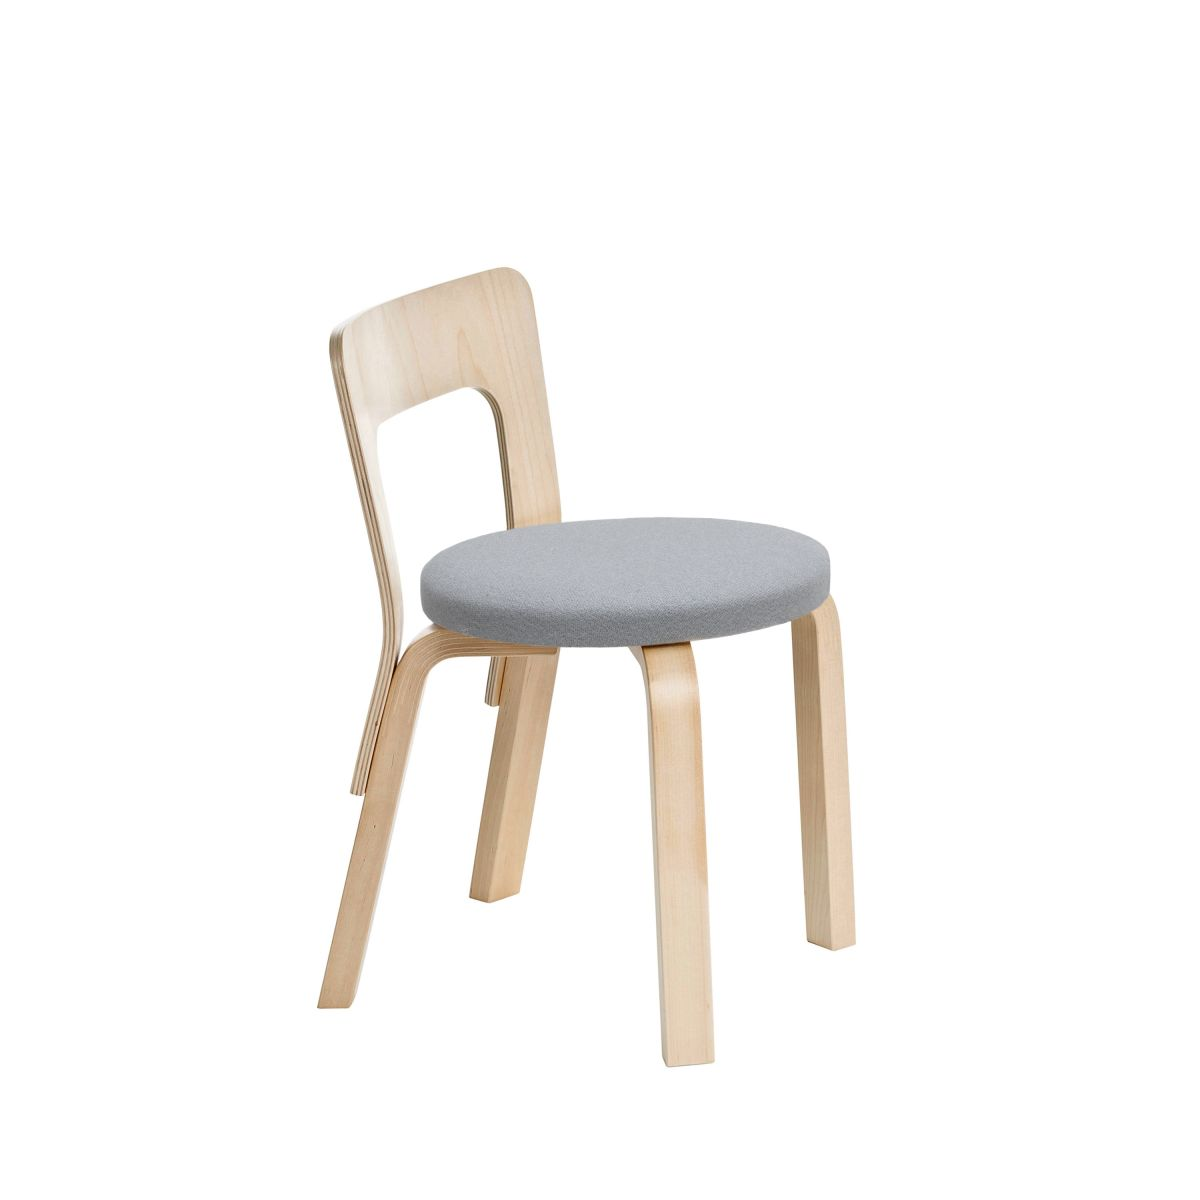 Children's Chair N65 legs birch_seat fabric upholstery_F